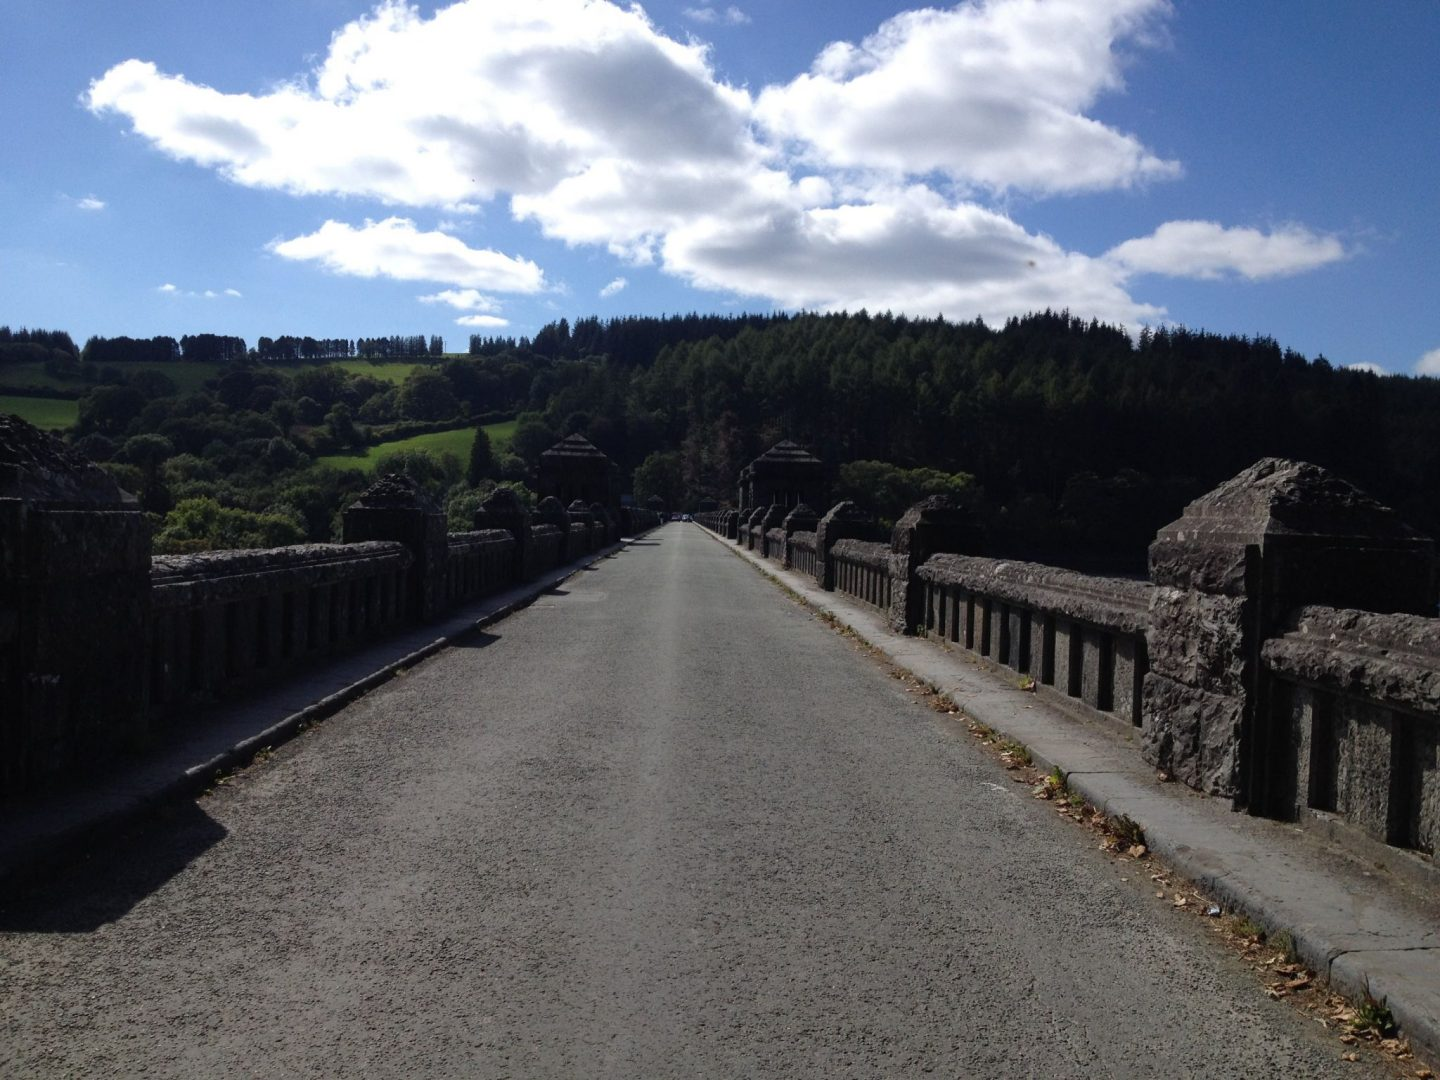 Driving over the bridge at Lake Vyrnwy, Wales